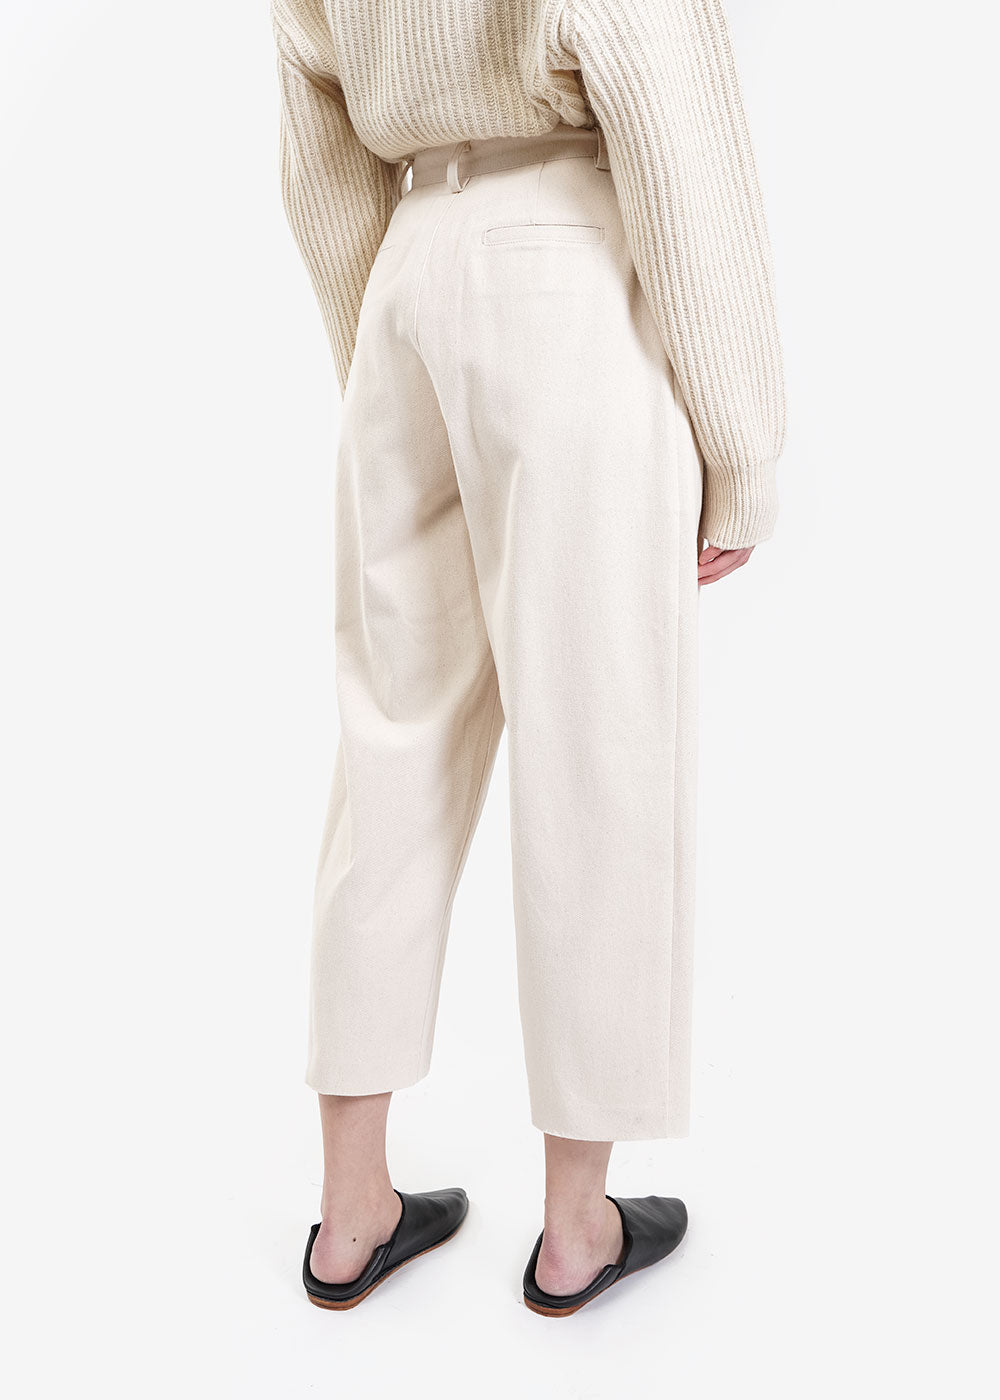 AMOMENTO Ecru Garconne Pants — Shop sustainable fashion and slow fashion at New Classics Studios